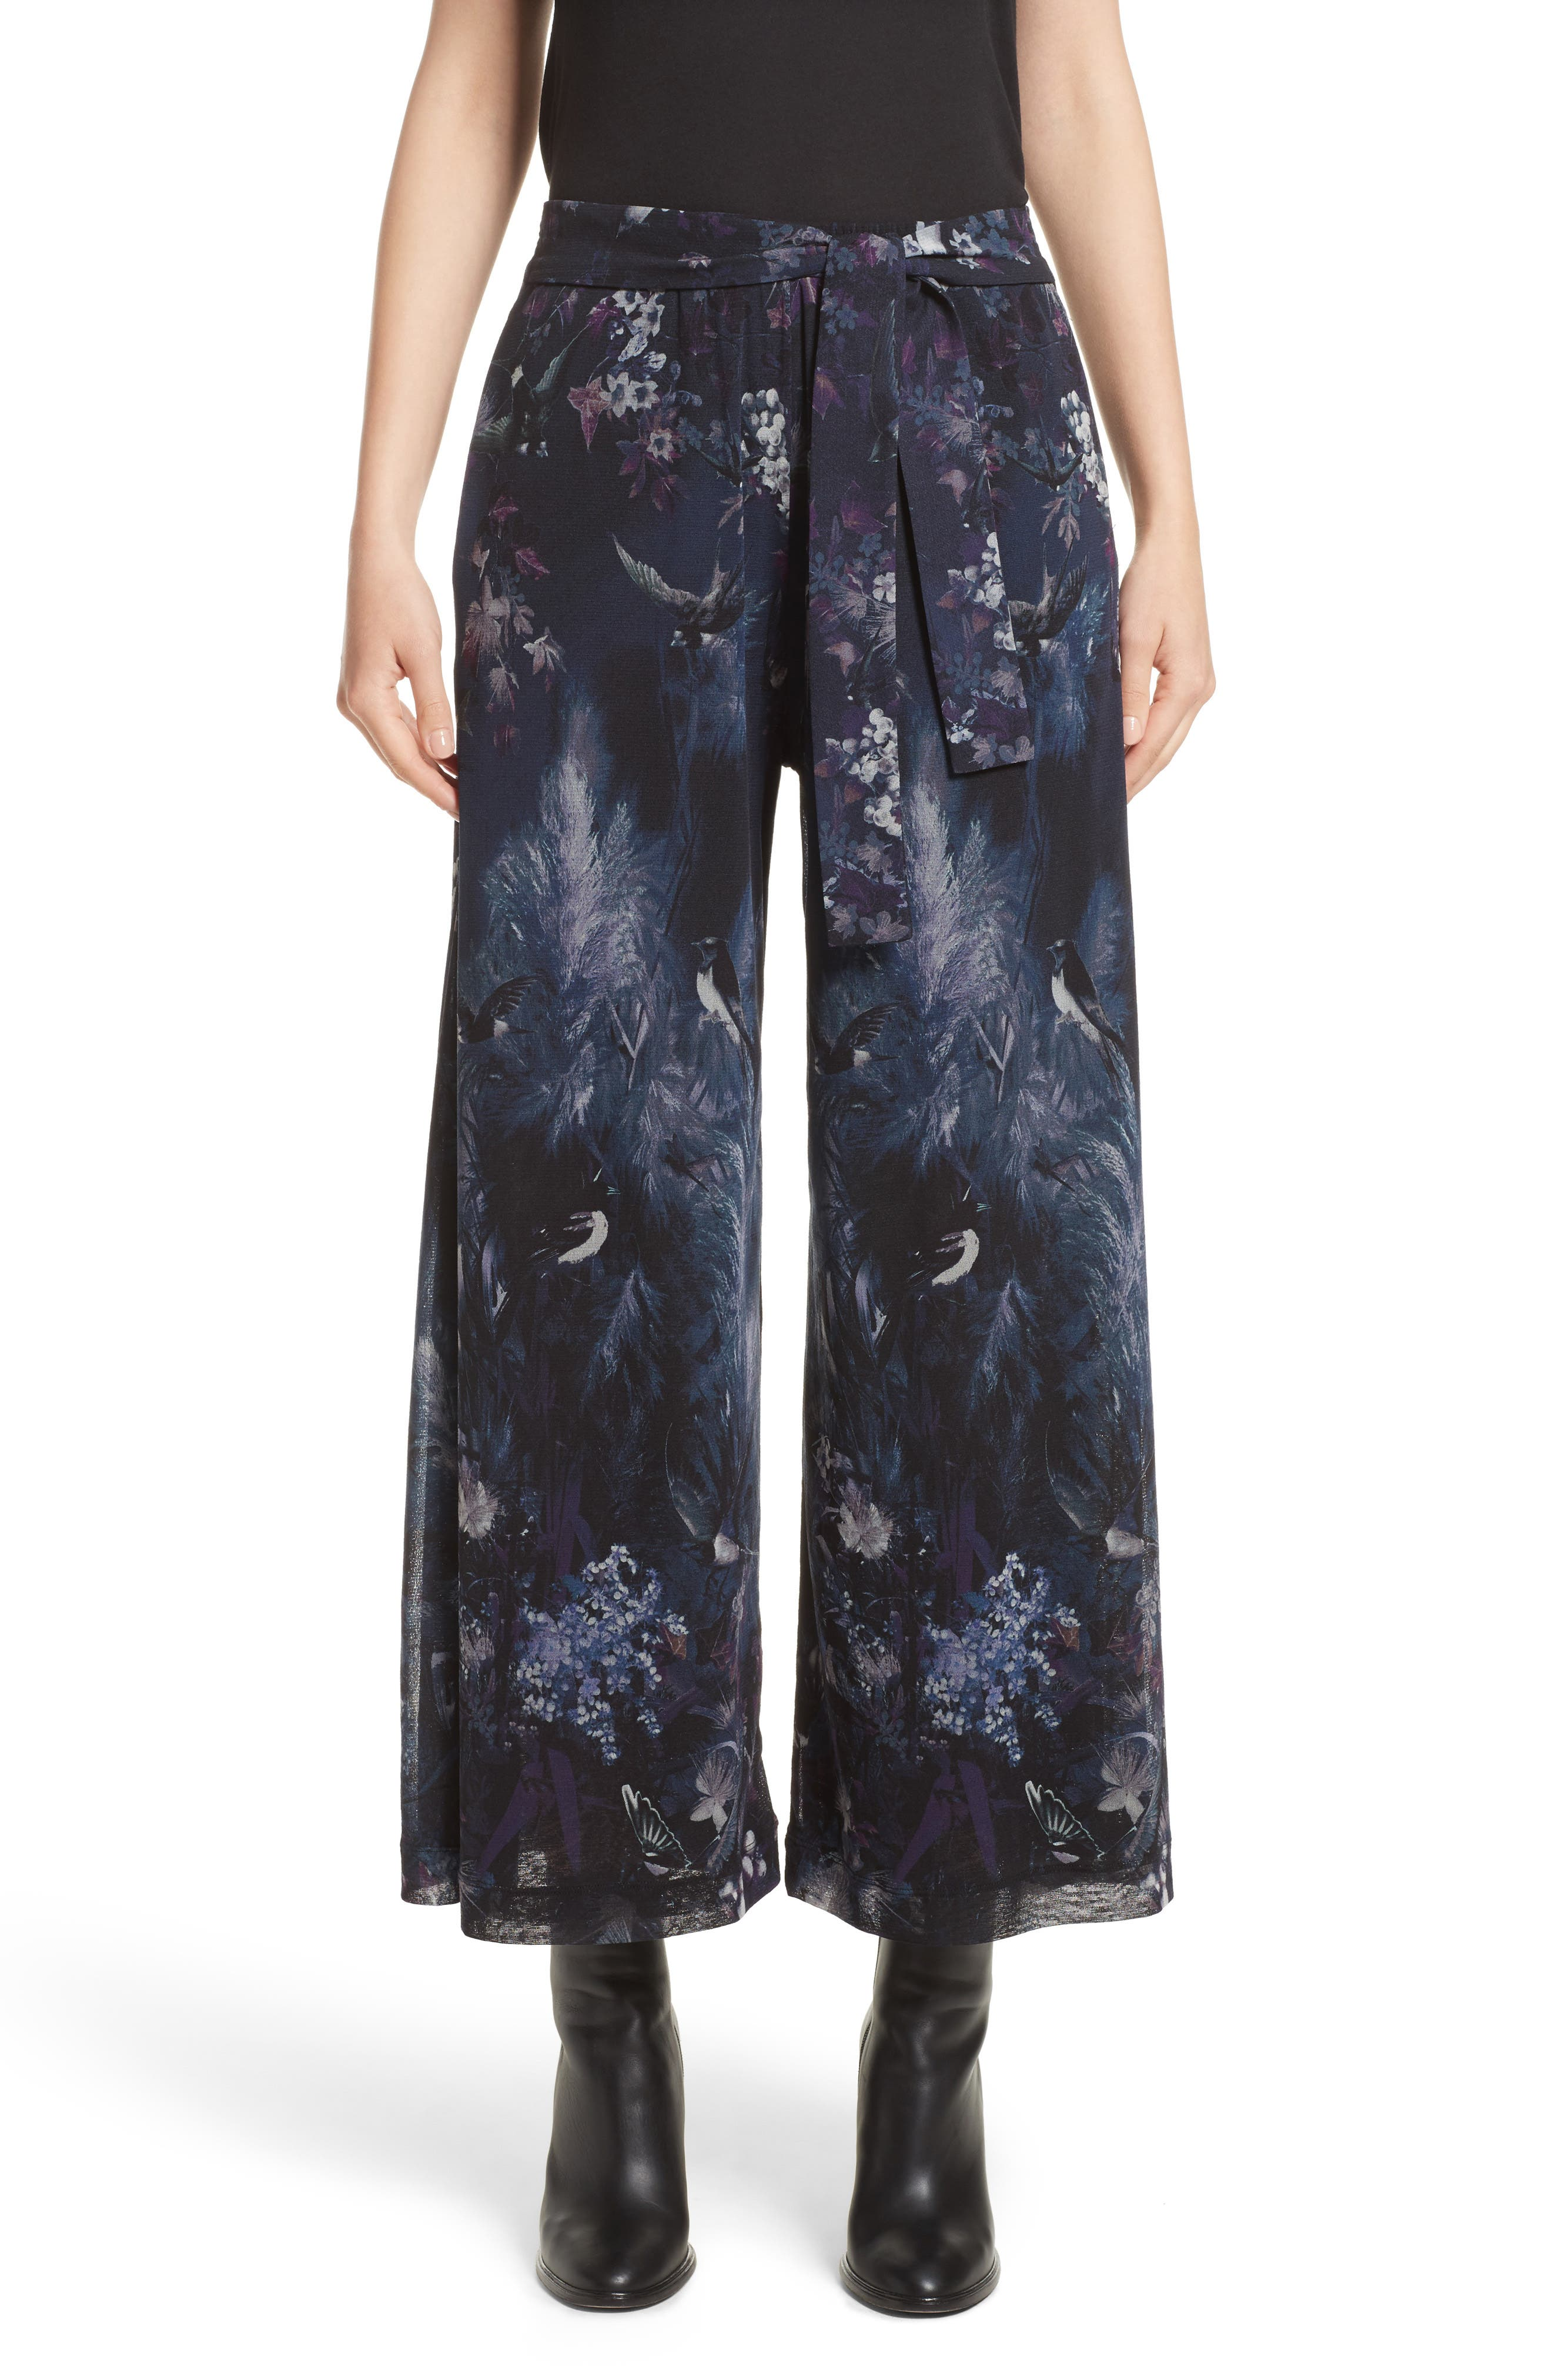 Alternate Image 1 Selected - Fuzzi Floral Print Tulle Belted Karate Pants